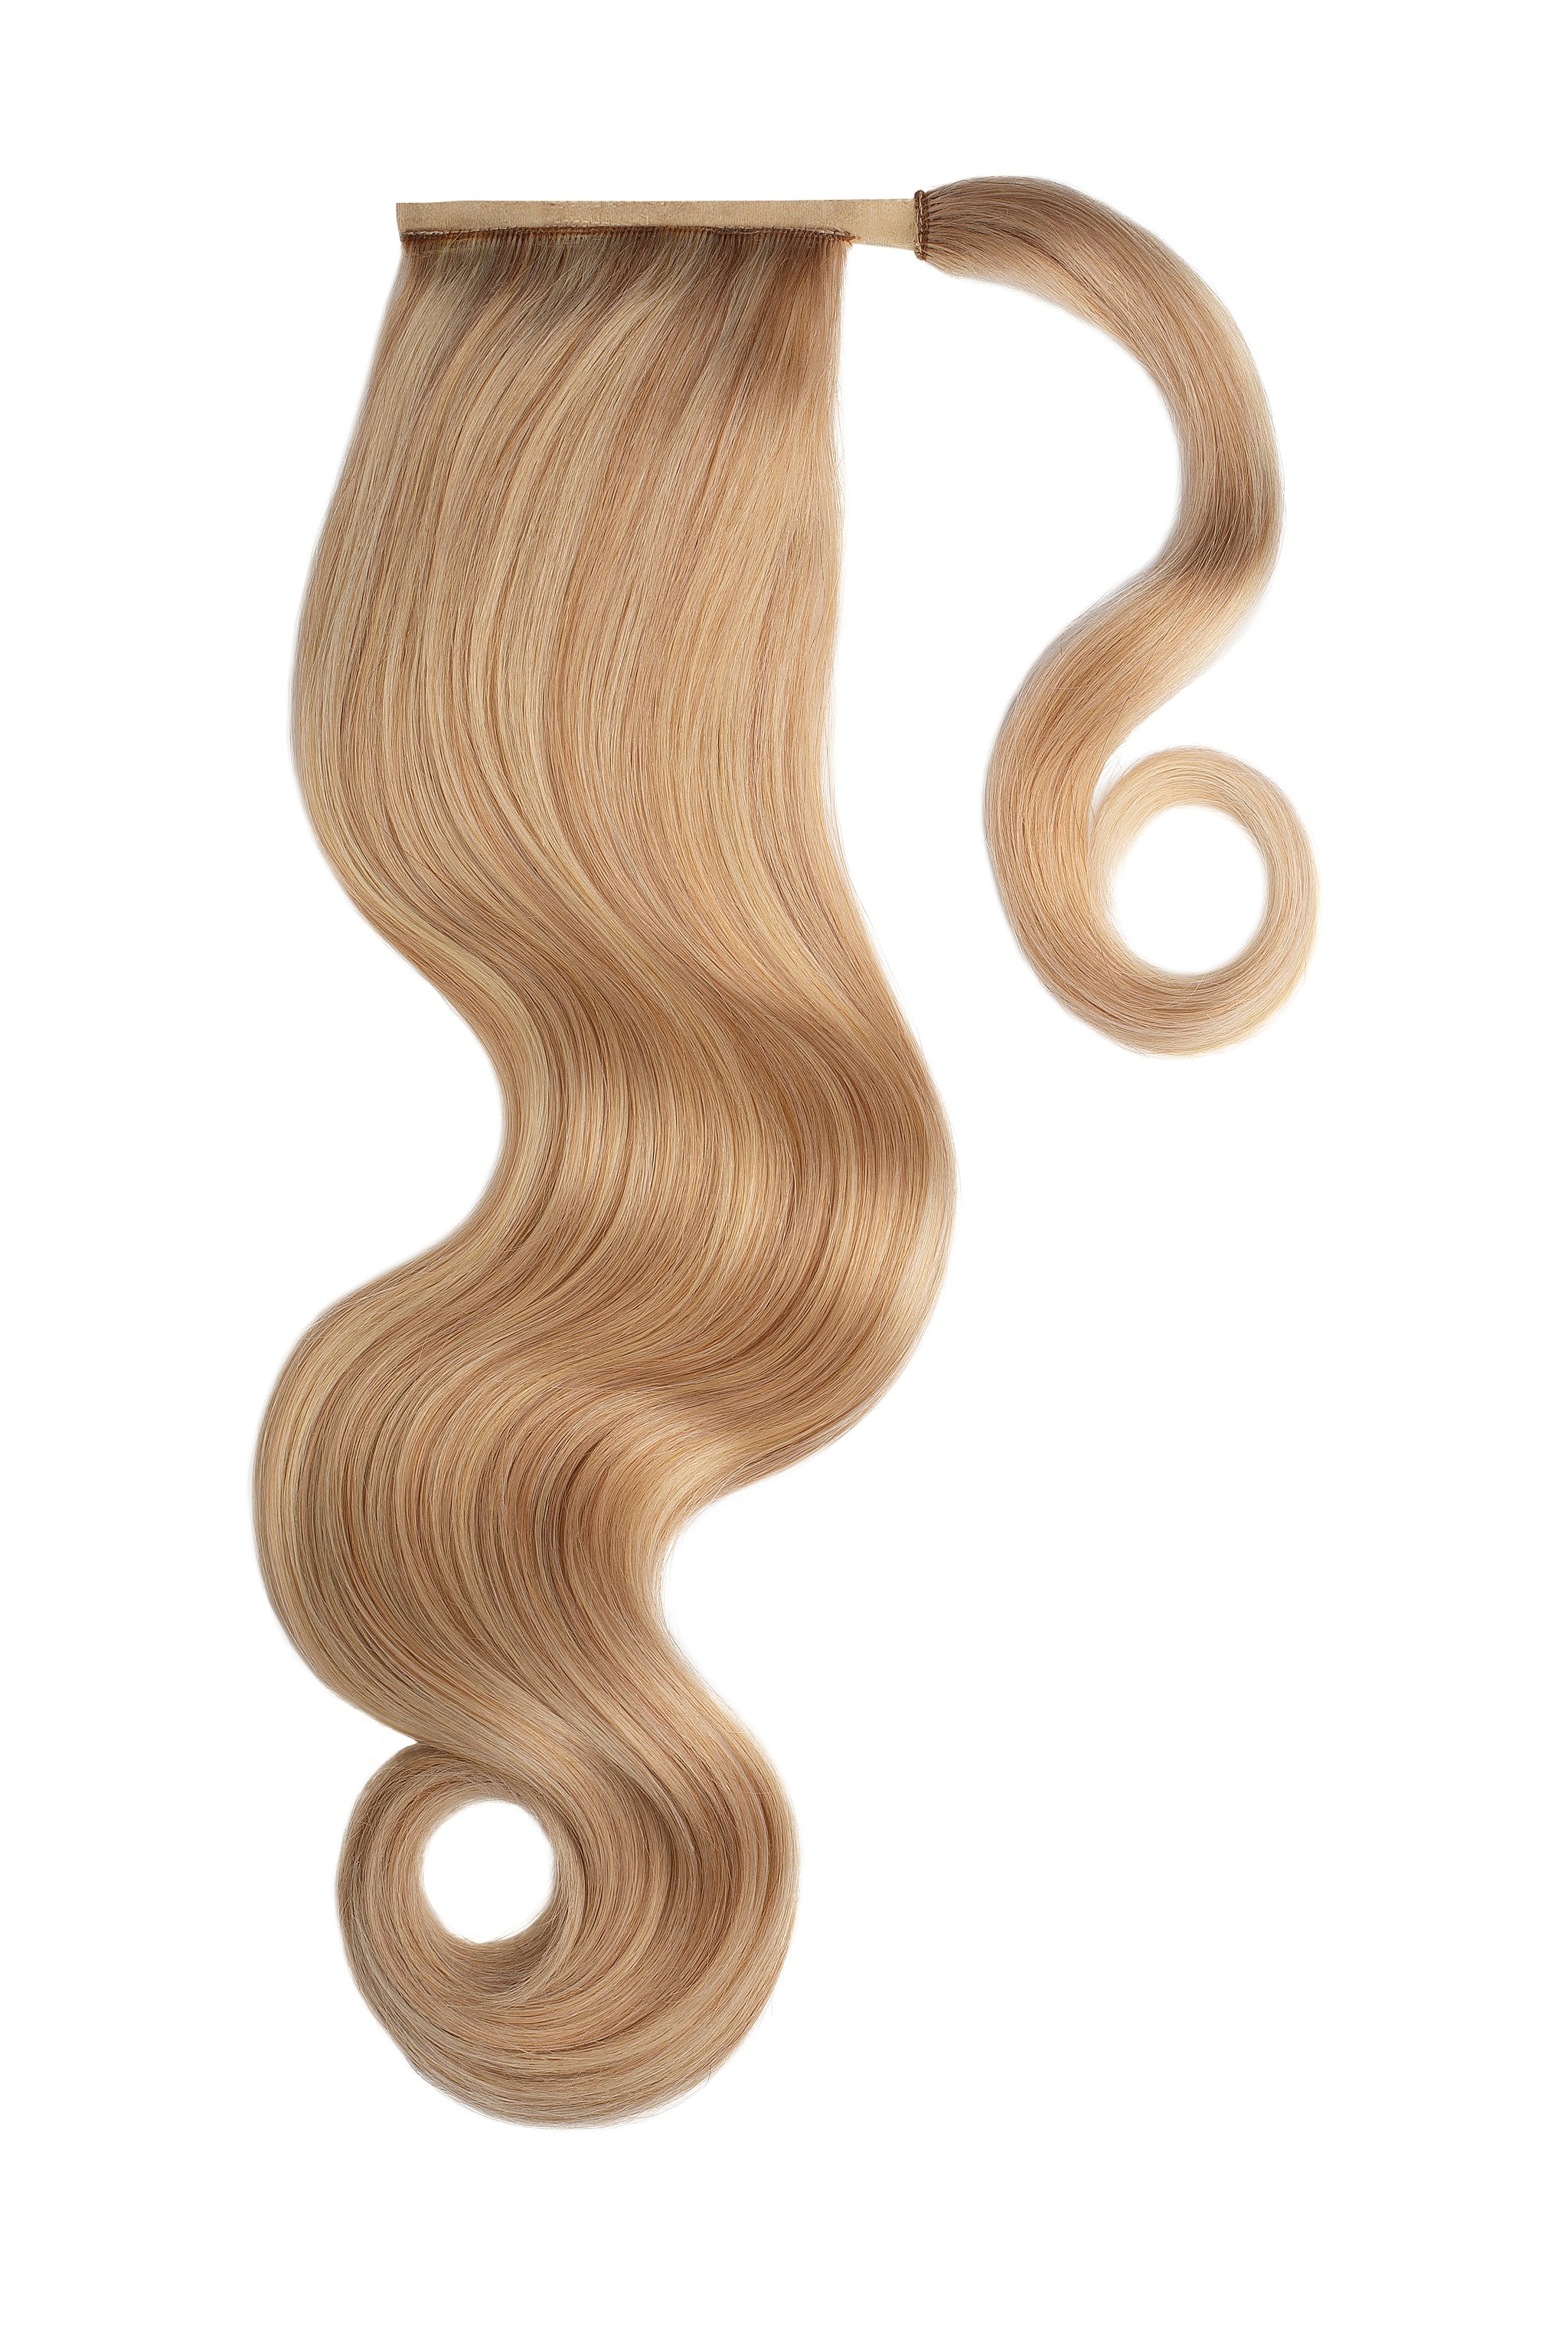 Blonde Highlights Clip In Ponytail Hair Extensions